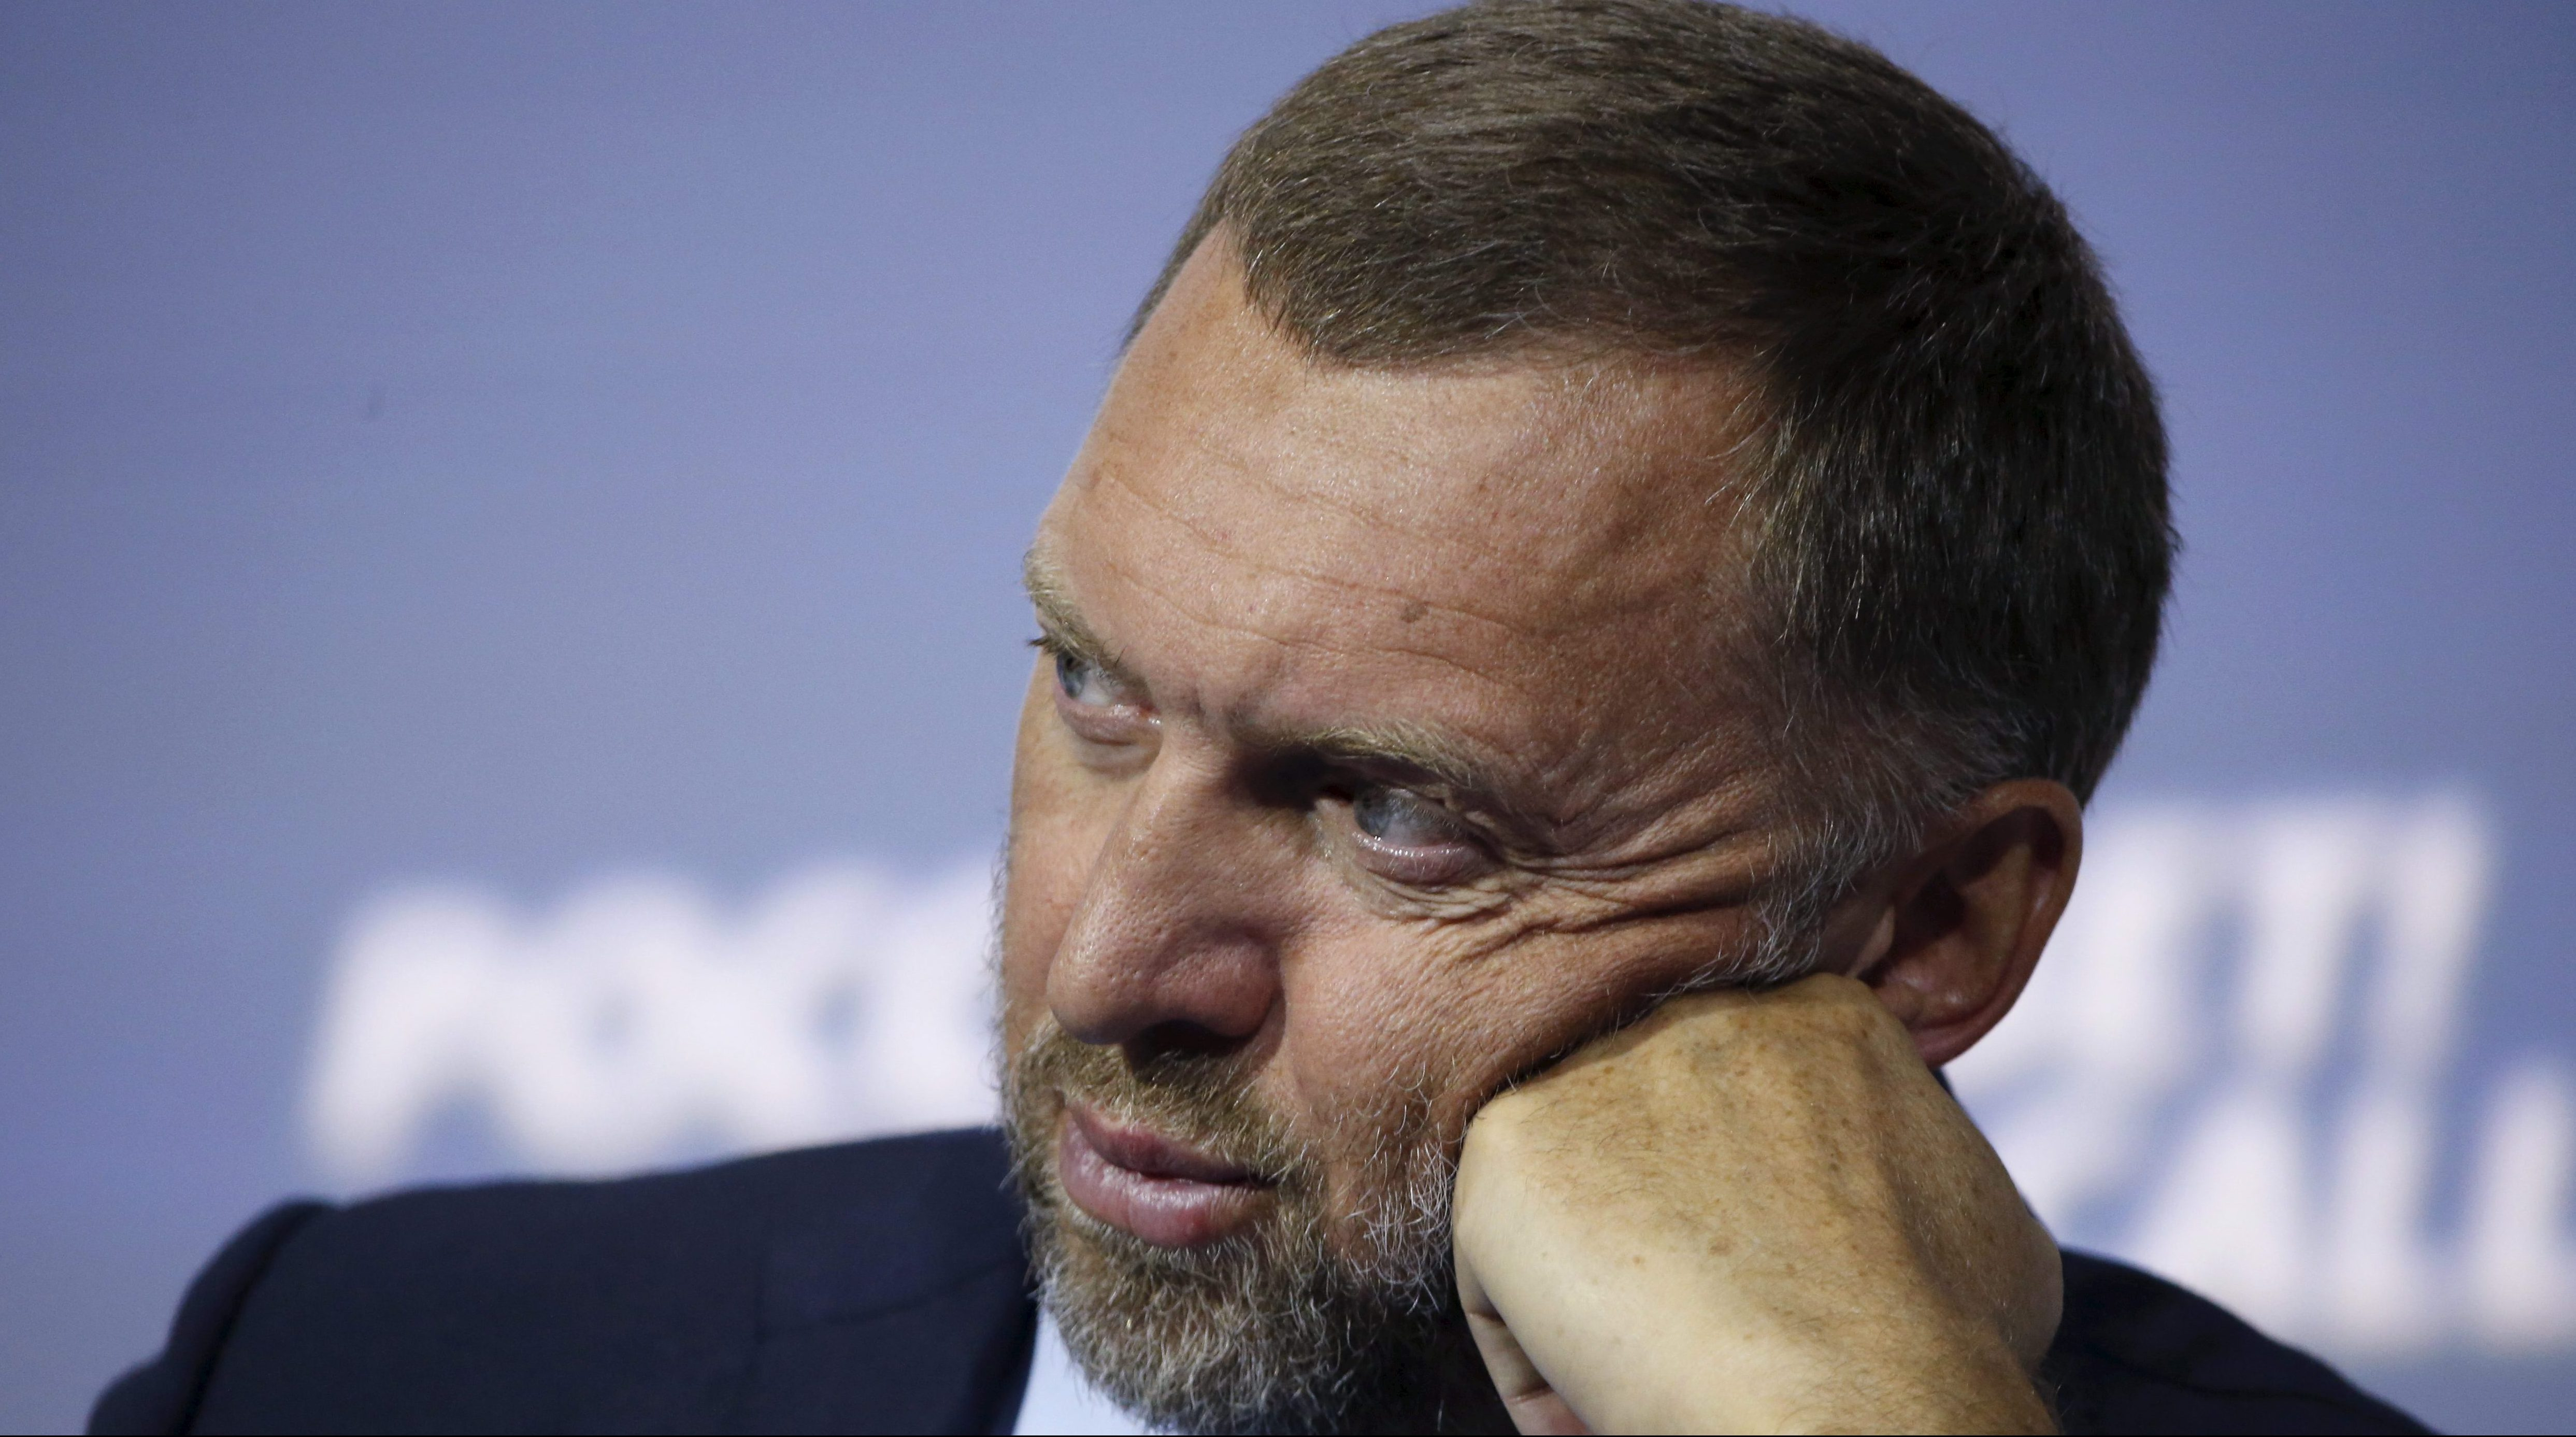 """Russian tycoon Oleg Deripaska attends the 7th annual VTB Capital """"Russia Calling!"""" Investment Forum in Moscow, Russia, October 13, 2015."""